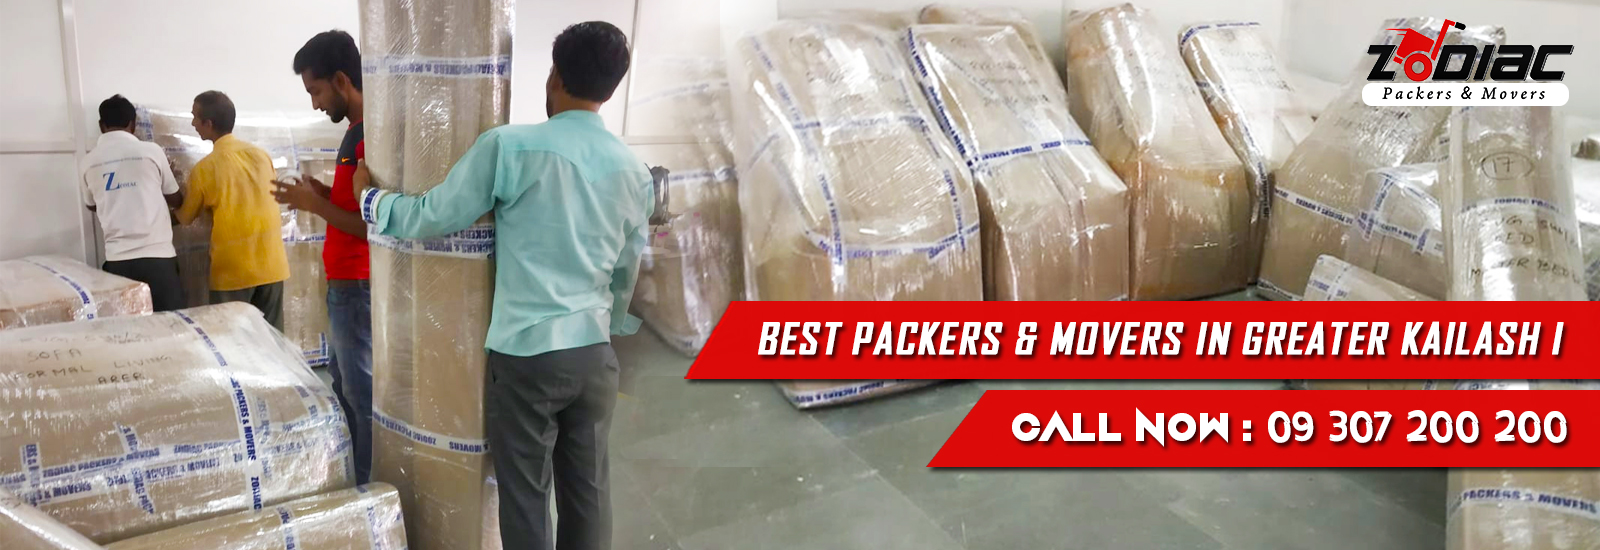 Packers and Movers in Greater Kailash I